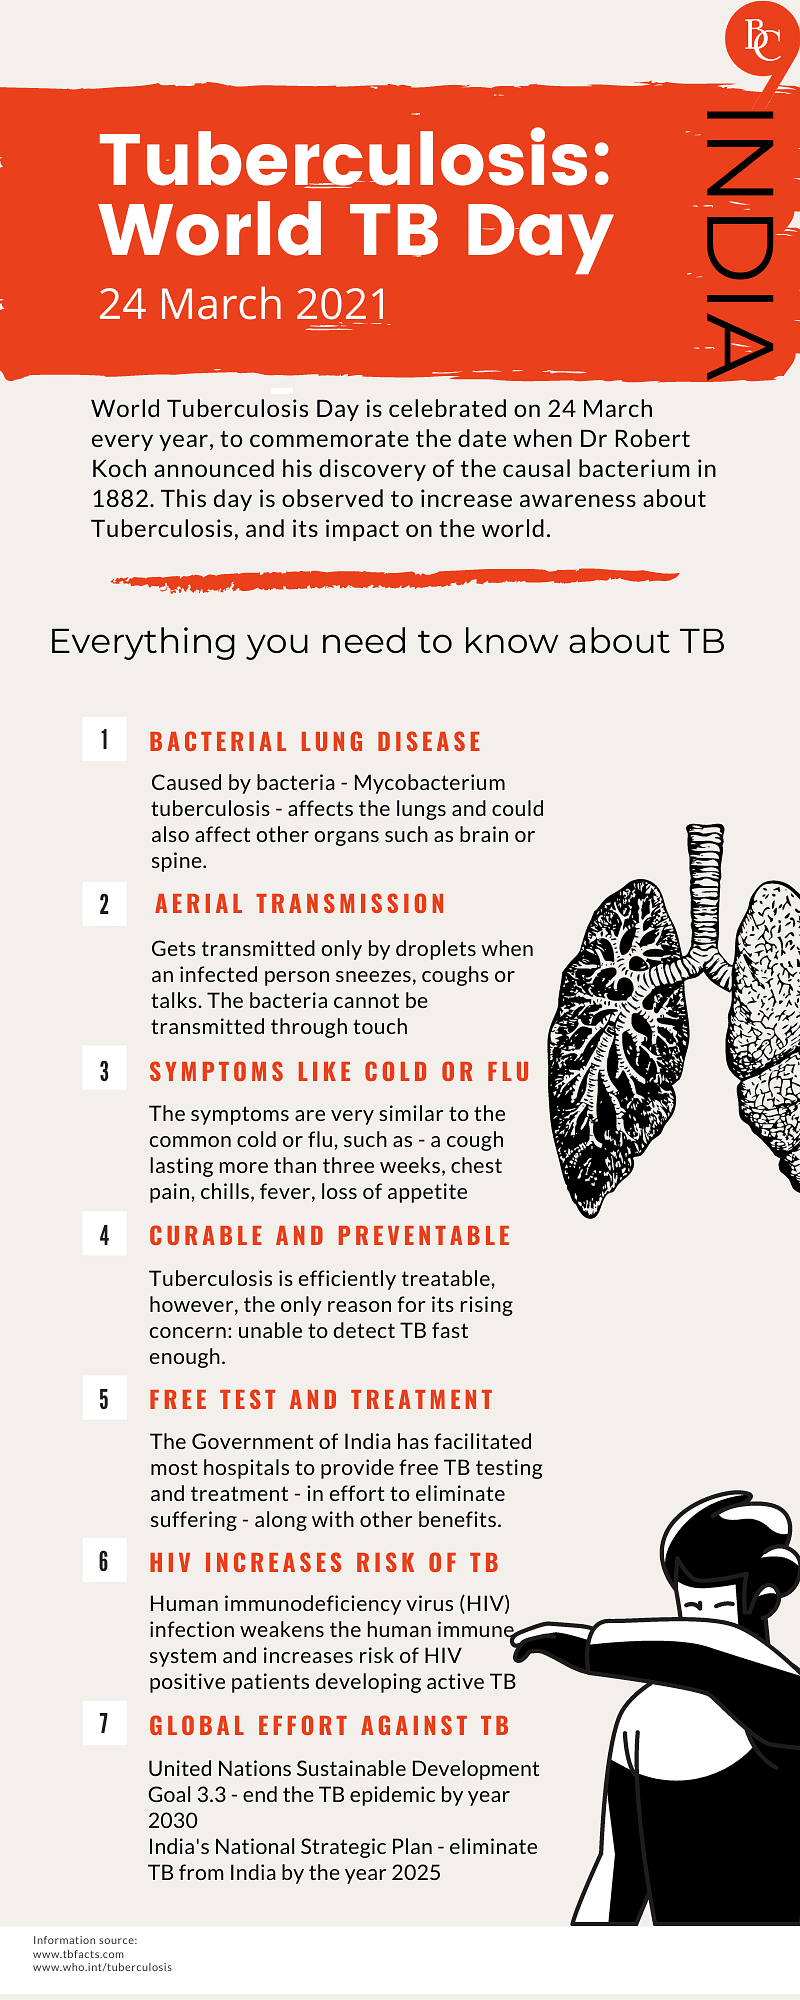 Everything you need to know about Tuberculosis (TB) in India